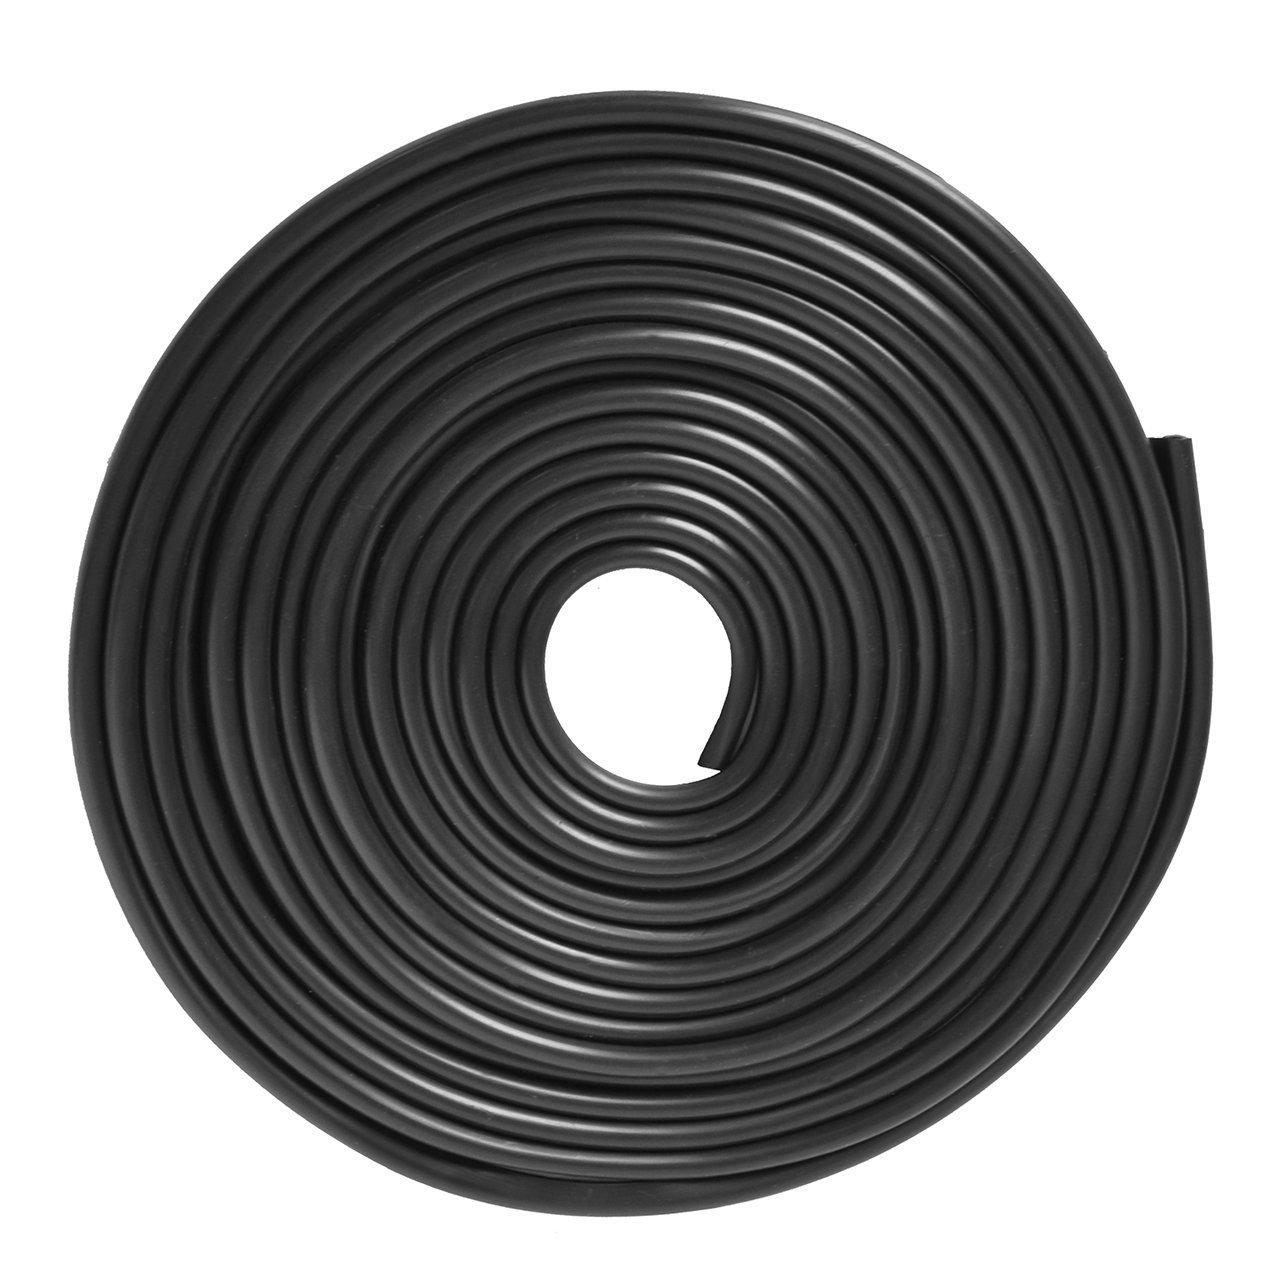 Seamong Car Door Edge Seal U shape with Adhesive Trim Molding for Most Cars Trucks 5m 16ft Black